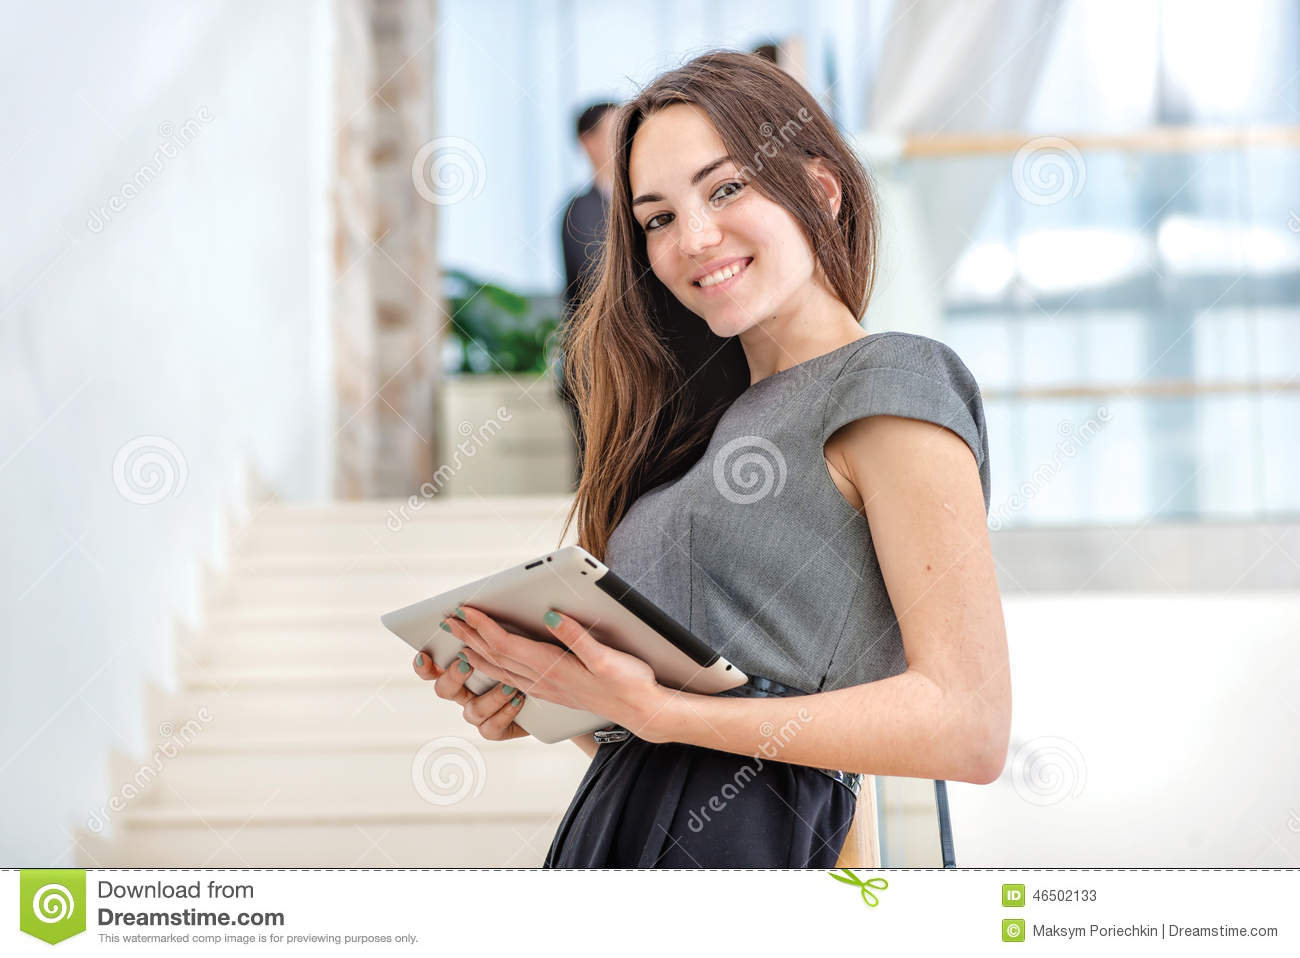 Woman businessman stands on the stairs looking at the camera. Be